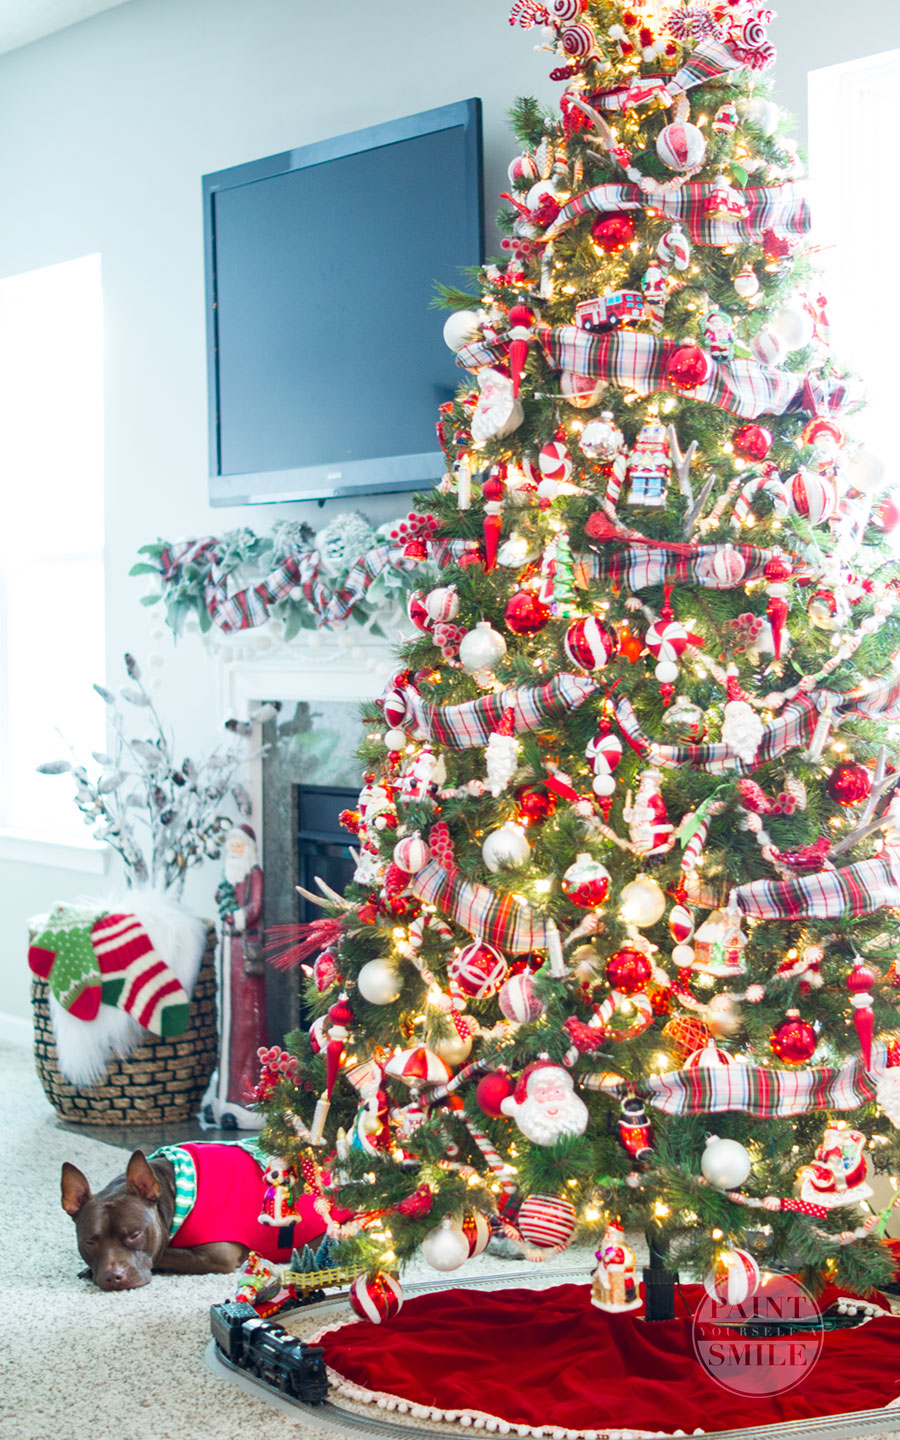 Classic budget friendly red & white plaid Christmas décor from Paint Yourself a Smile Christmas Home Tour.